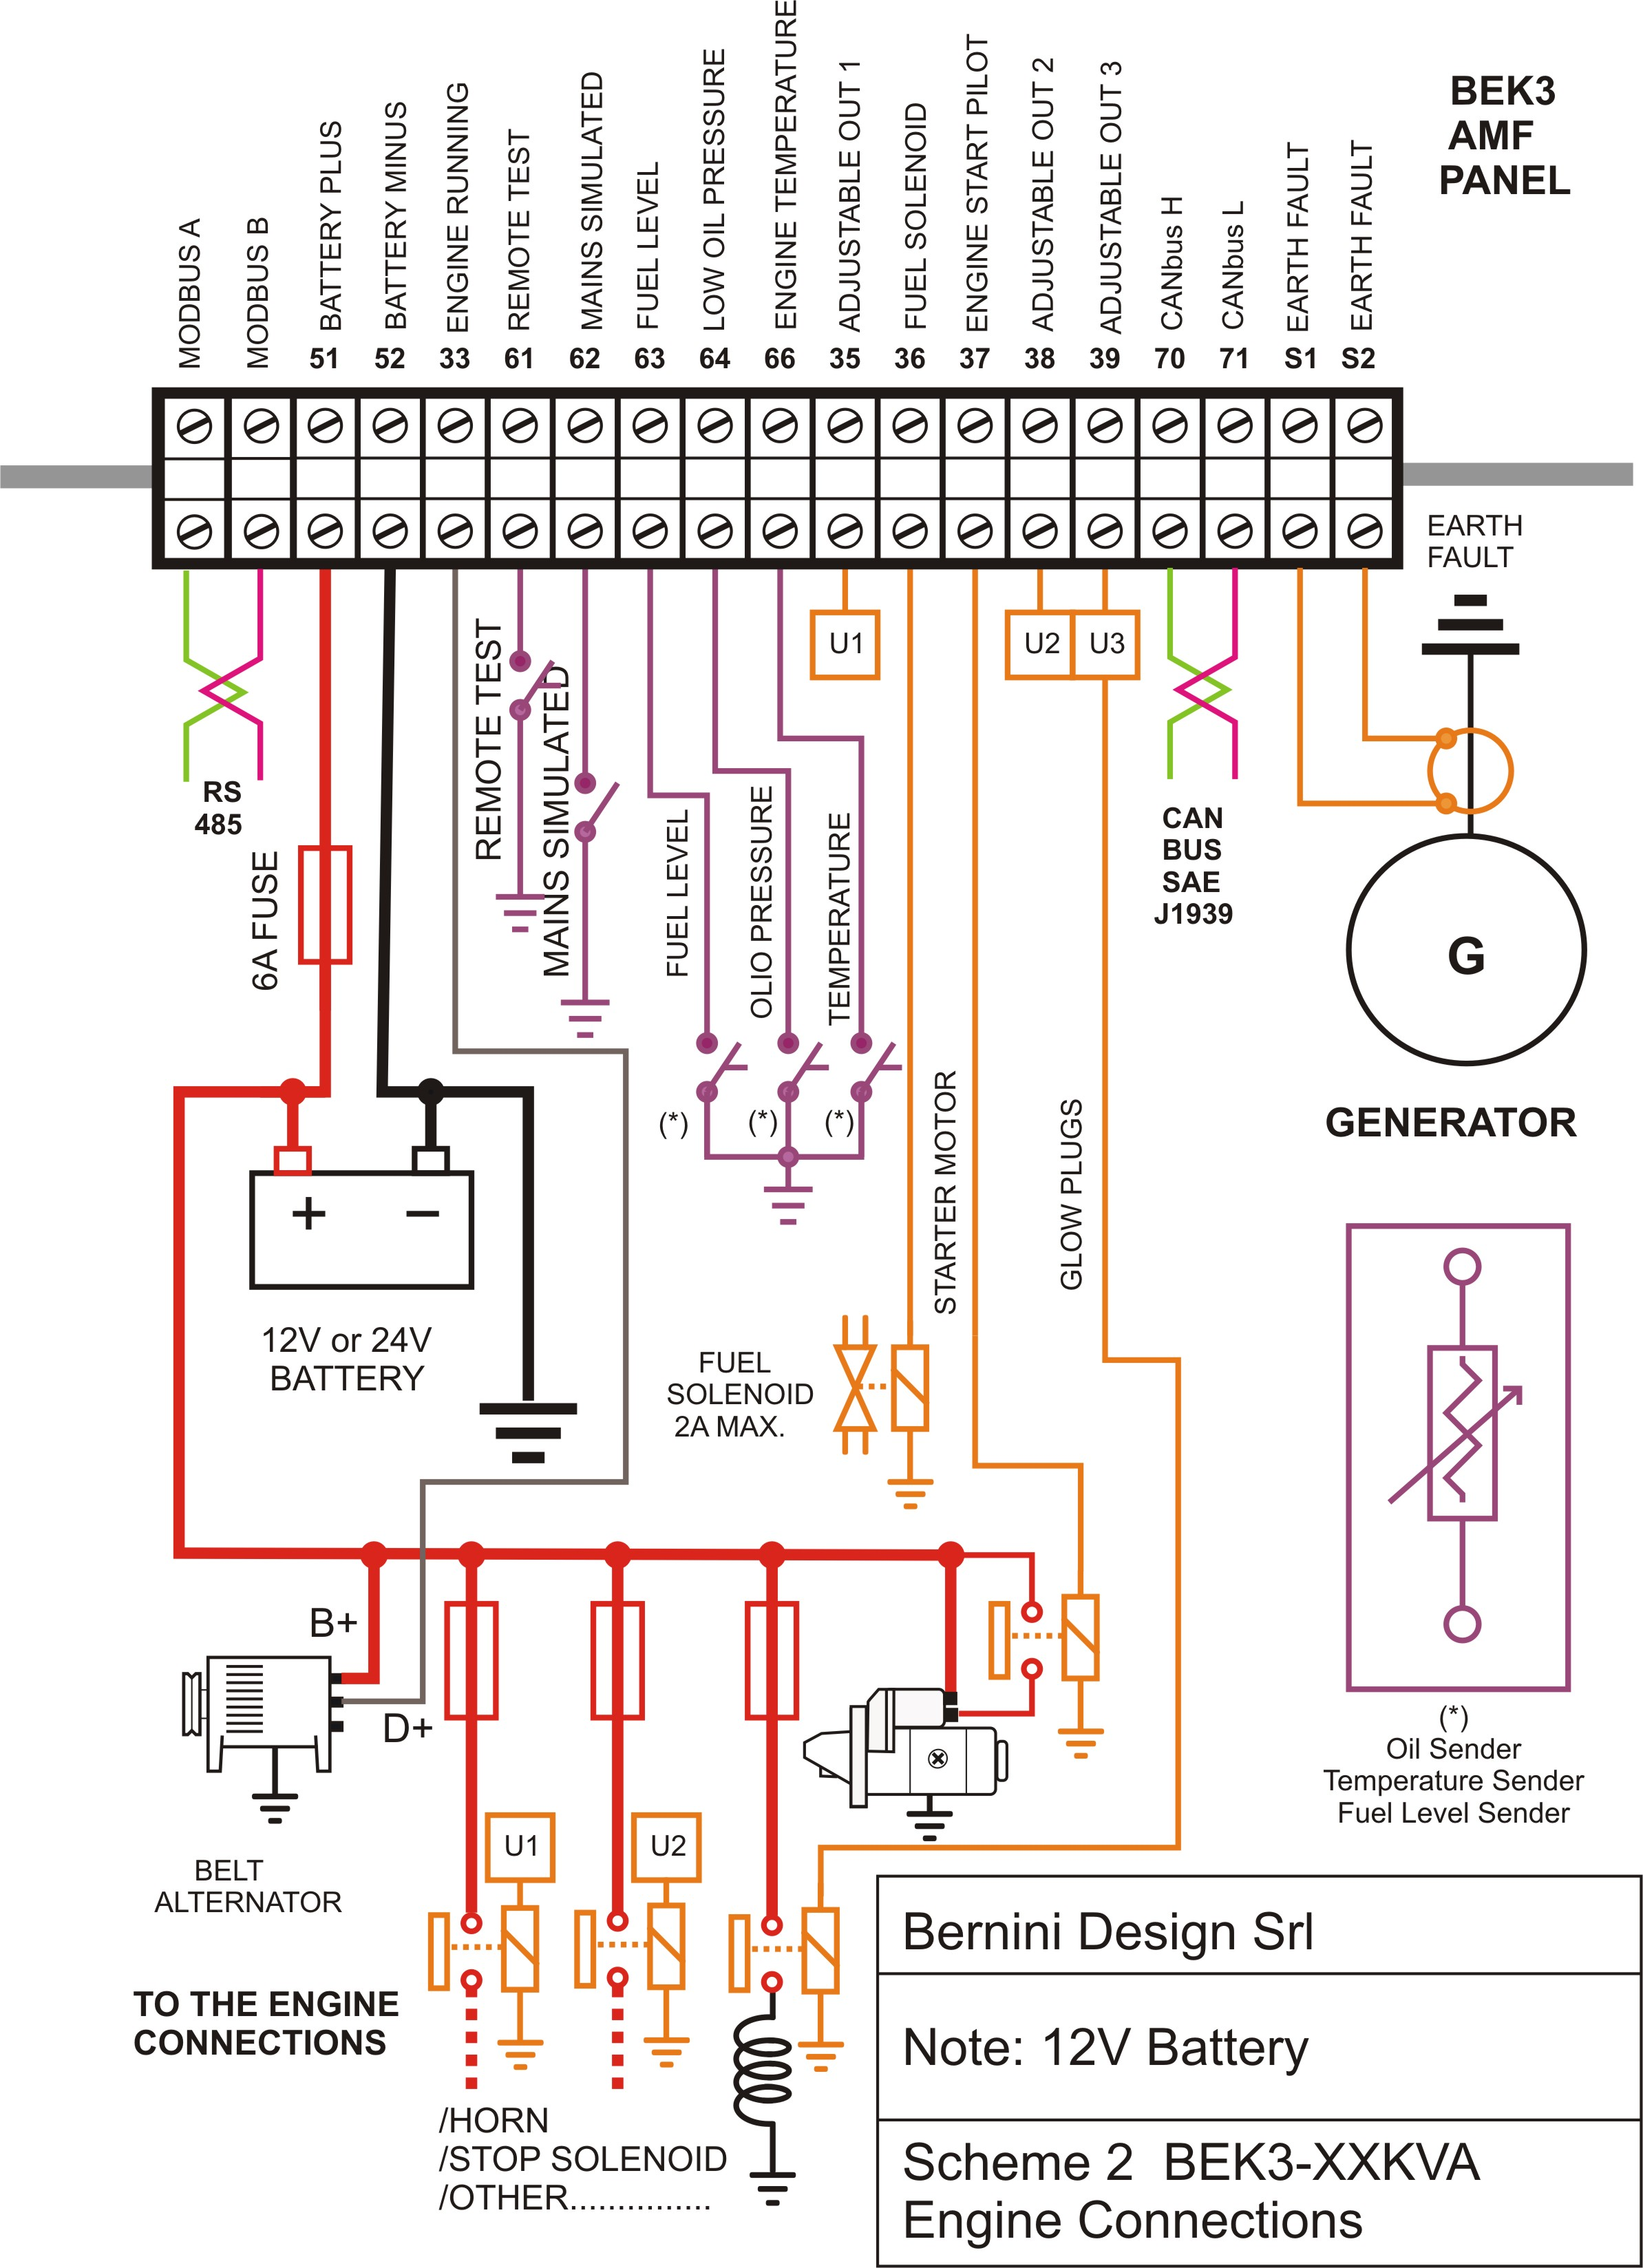 genset control wiring diagram   wiring schematics and diagramsamf control panel circuit diagram engine connections